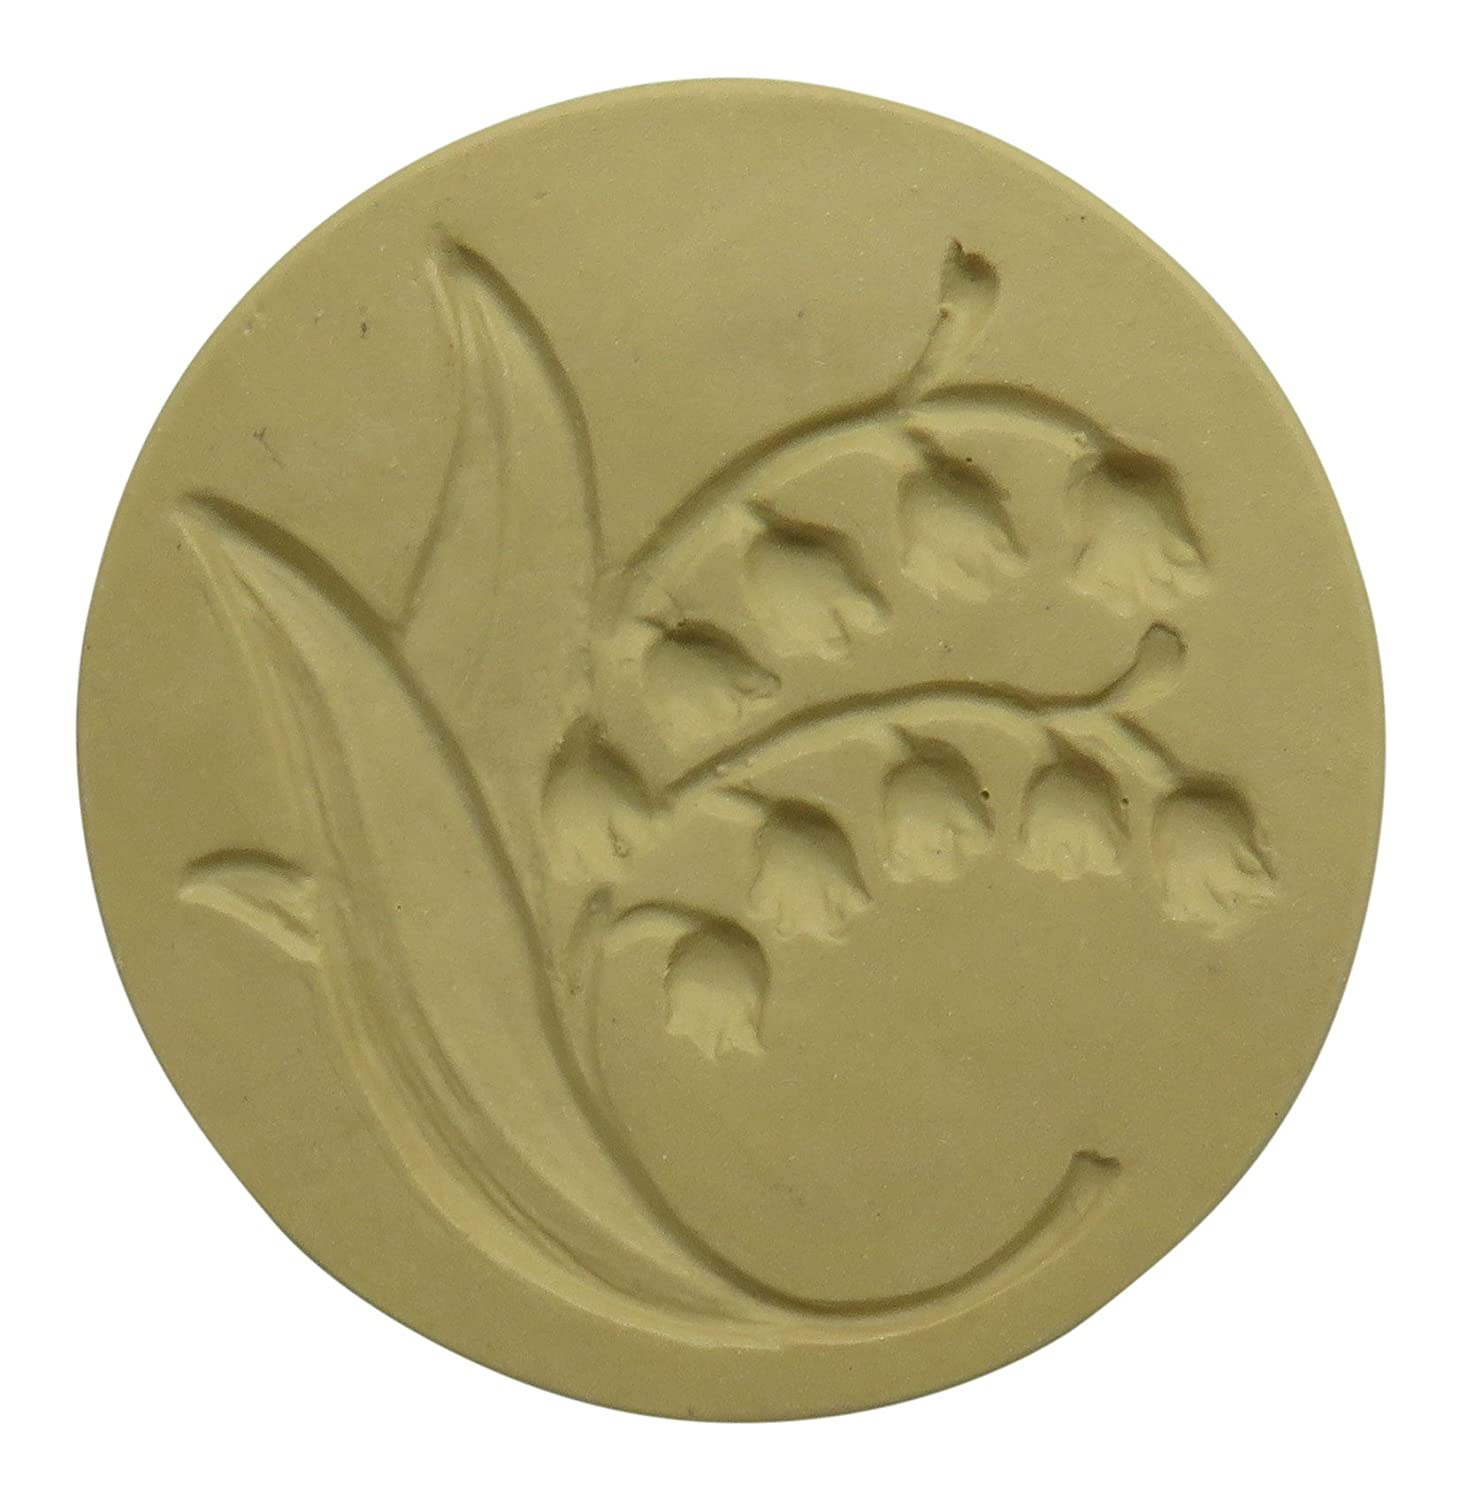 Brown Bag Lily of the Valley Cookie Stamp - Art Nouveau Flower Series by Brown Bag COMINHKR075995